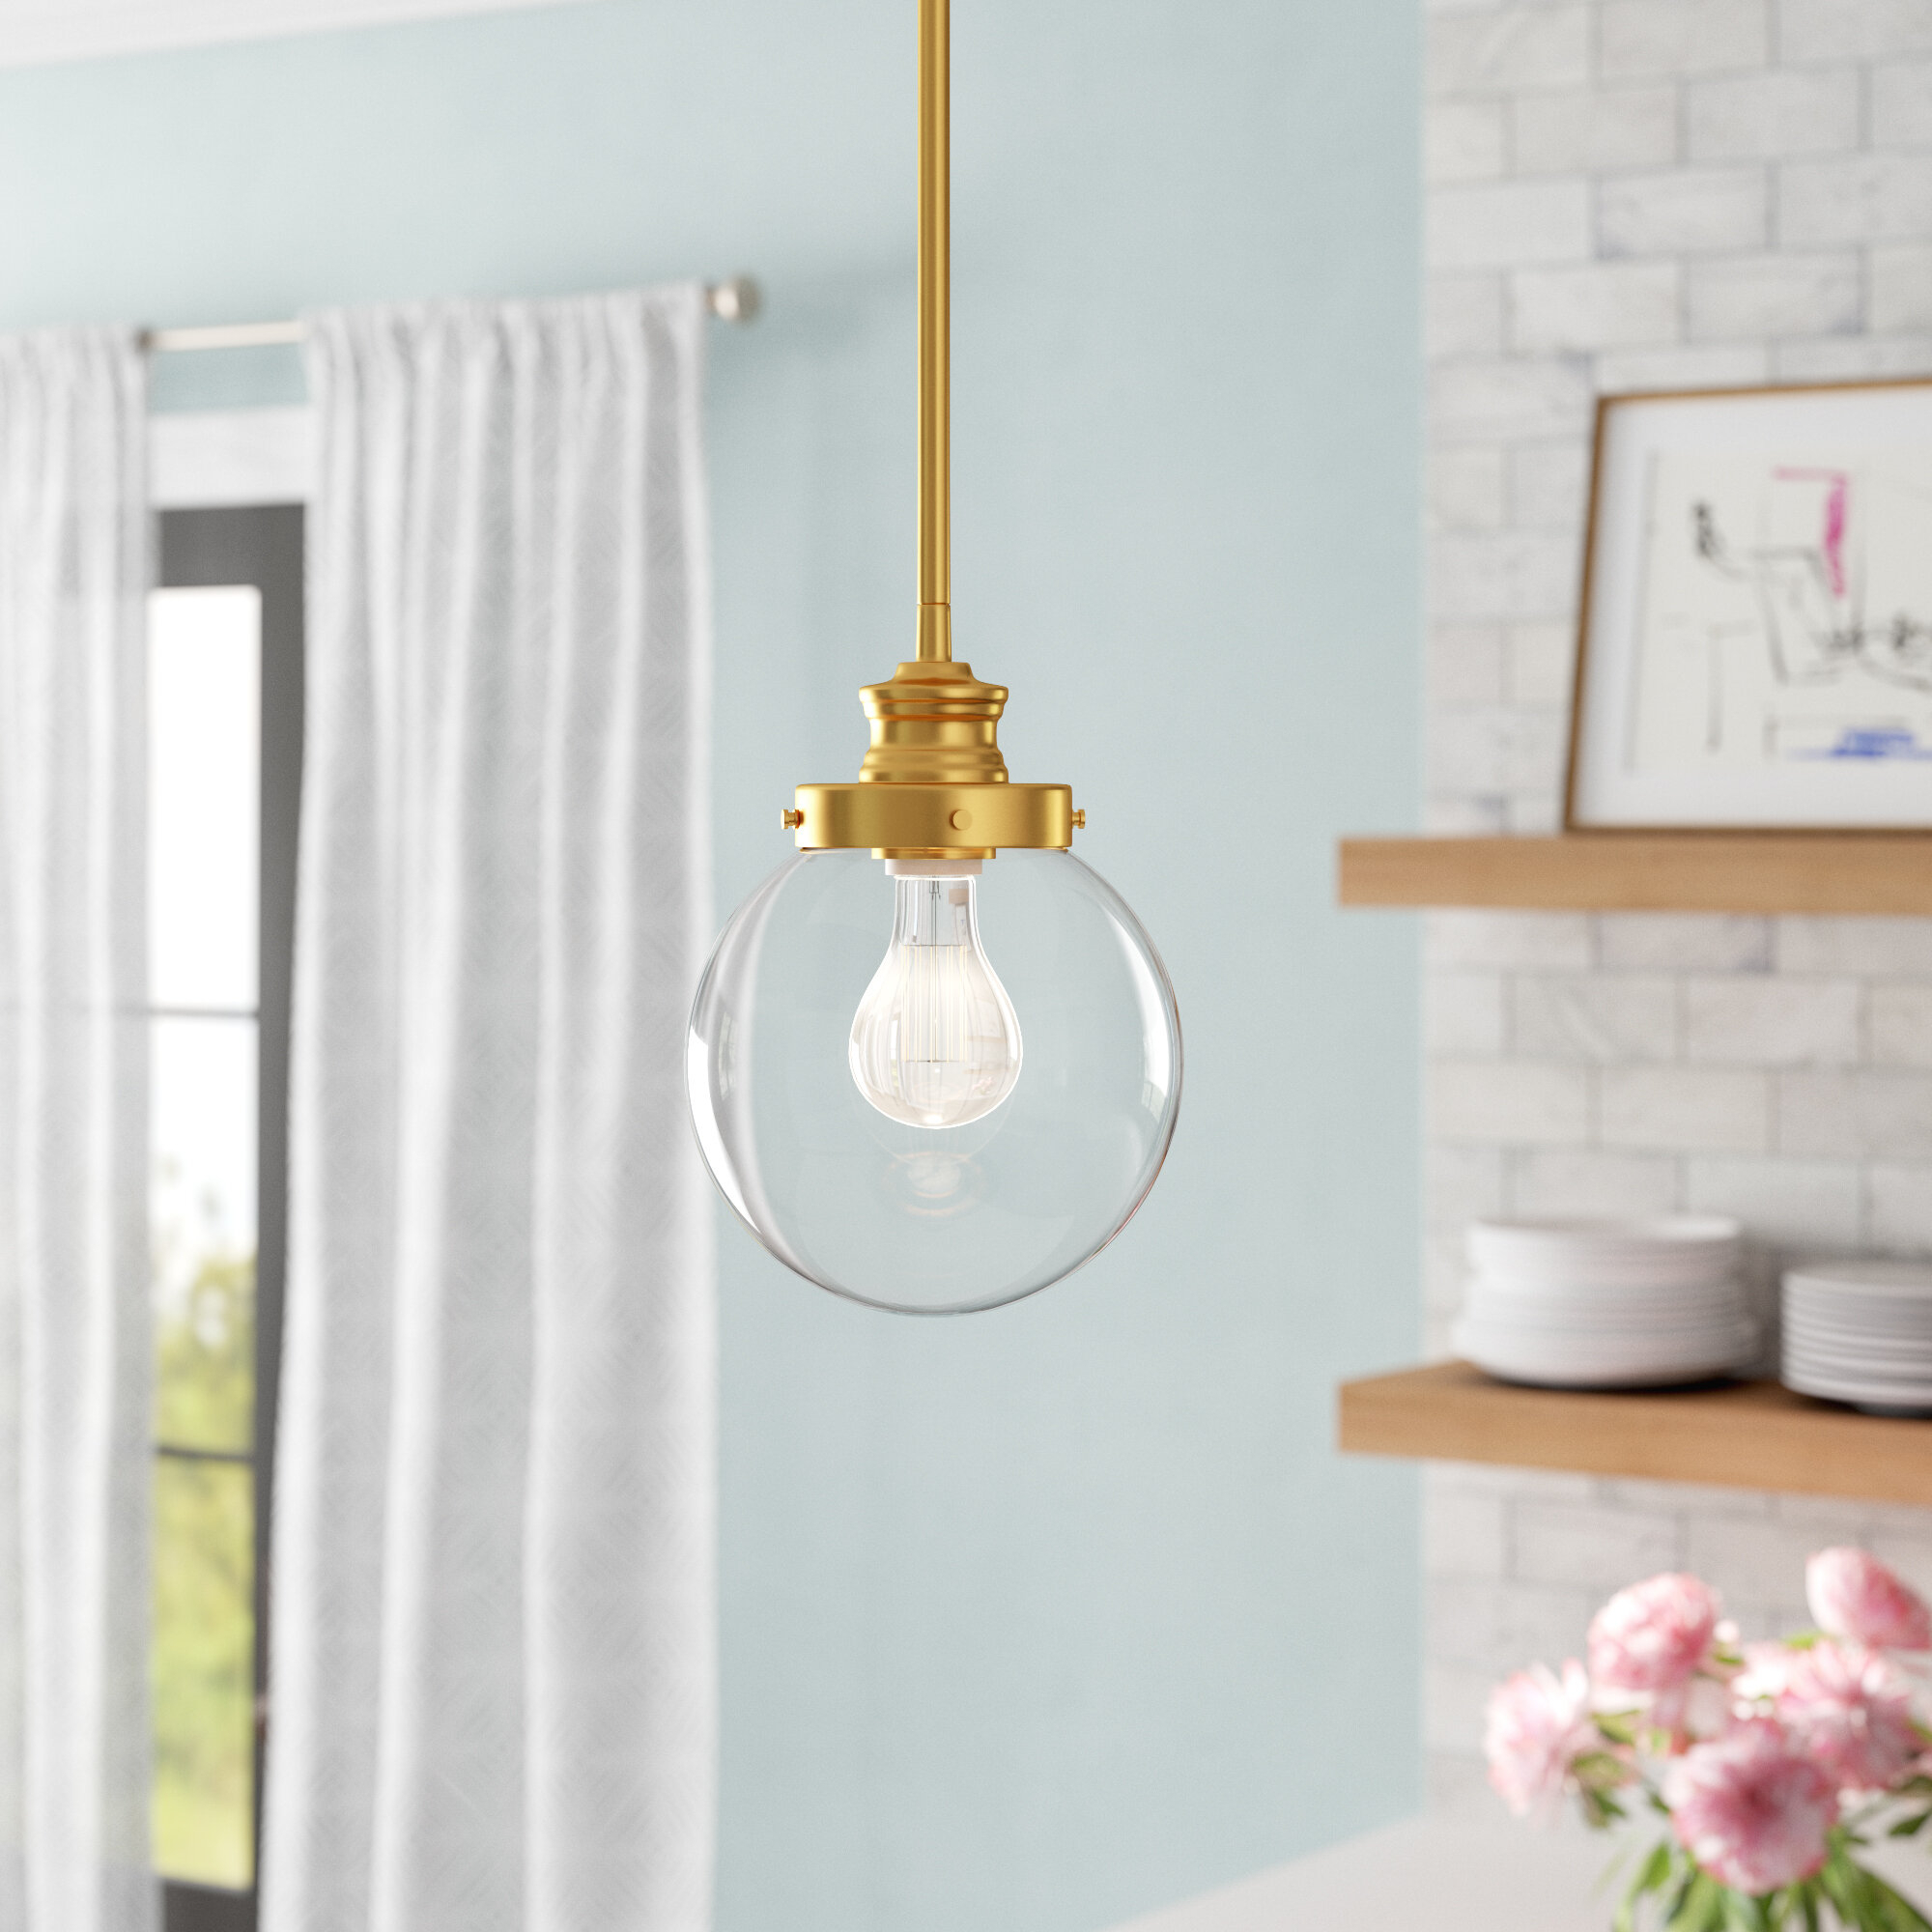 Cayden 1 Light Single Globe Pendant In Cayden 1 Light Single Globe Pendants (View 8 of 30)